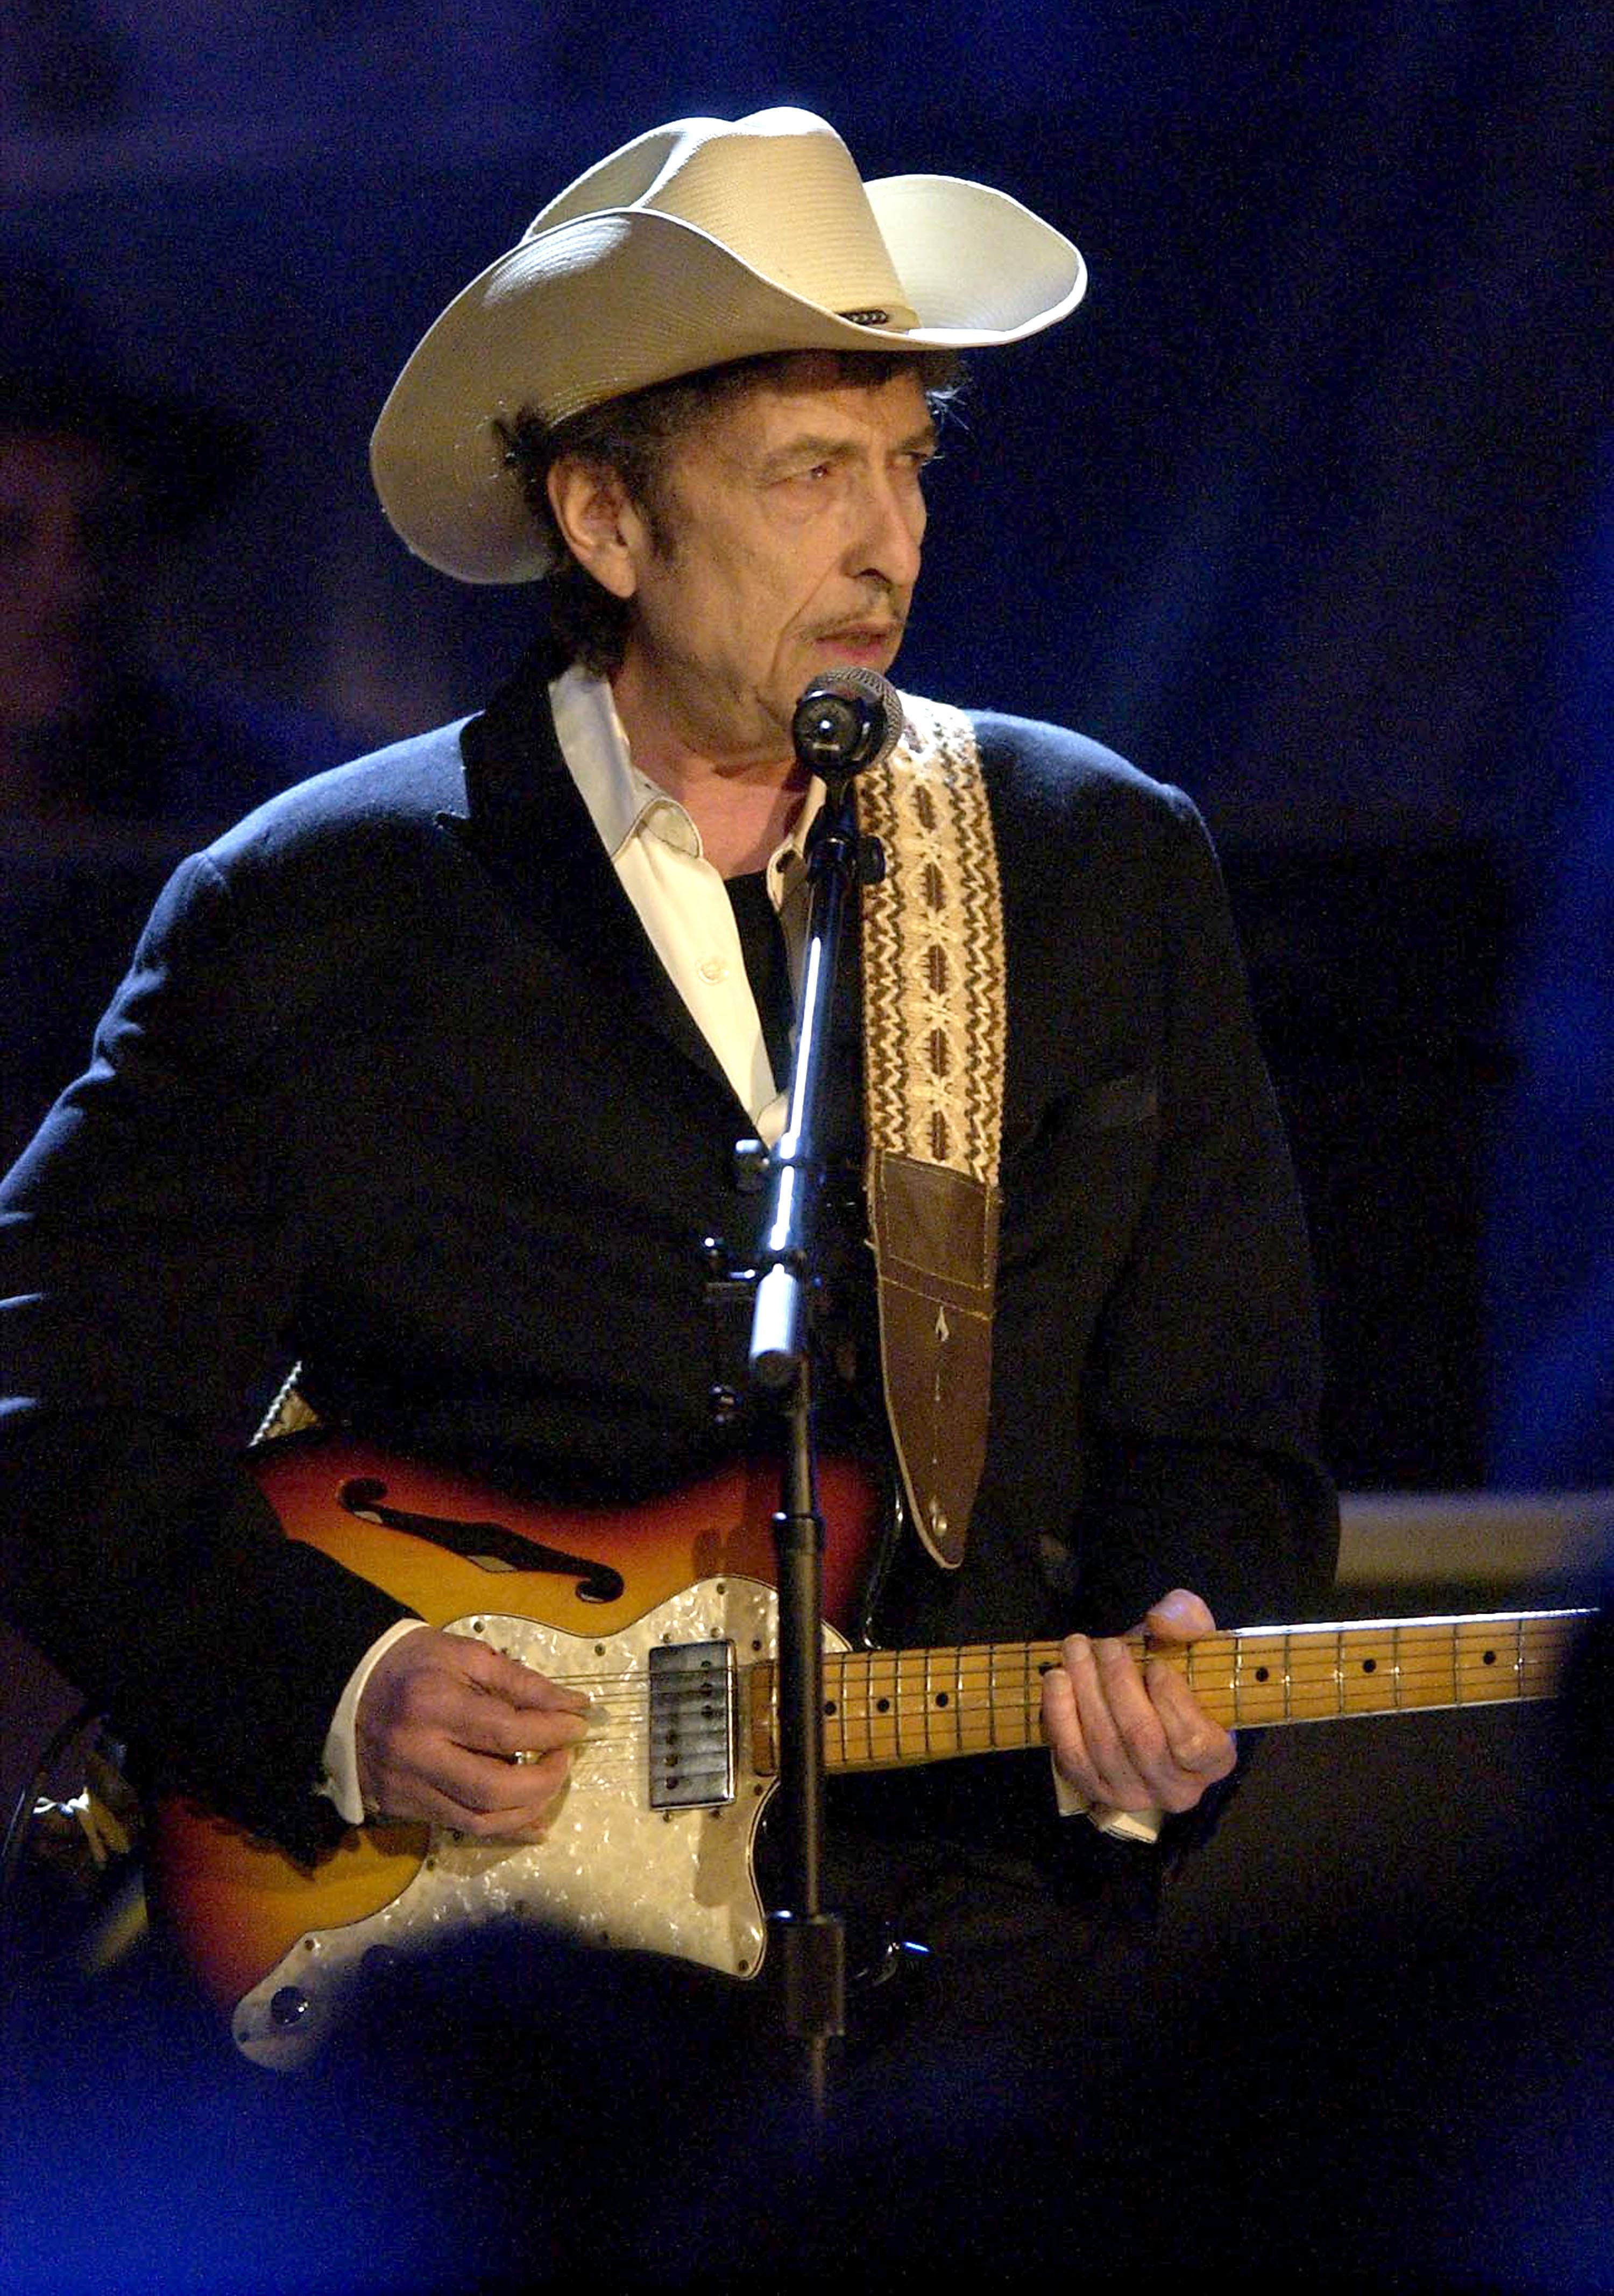 Bob Dylan was a no-show at yet another Nobel Prize–related event.